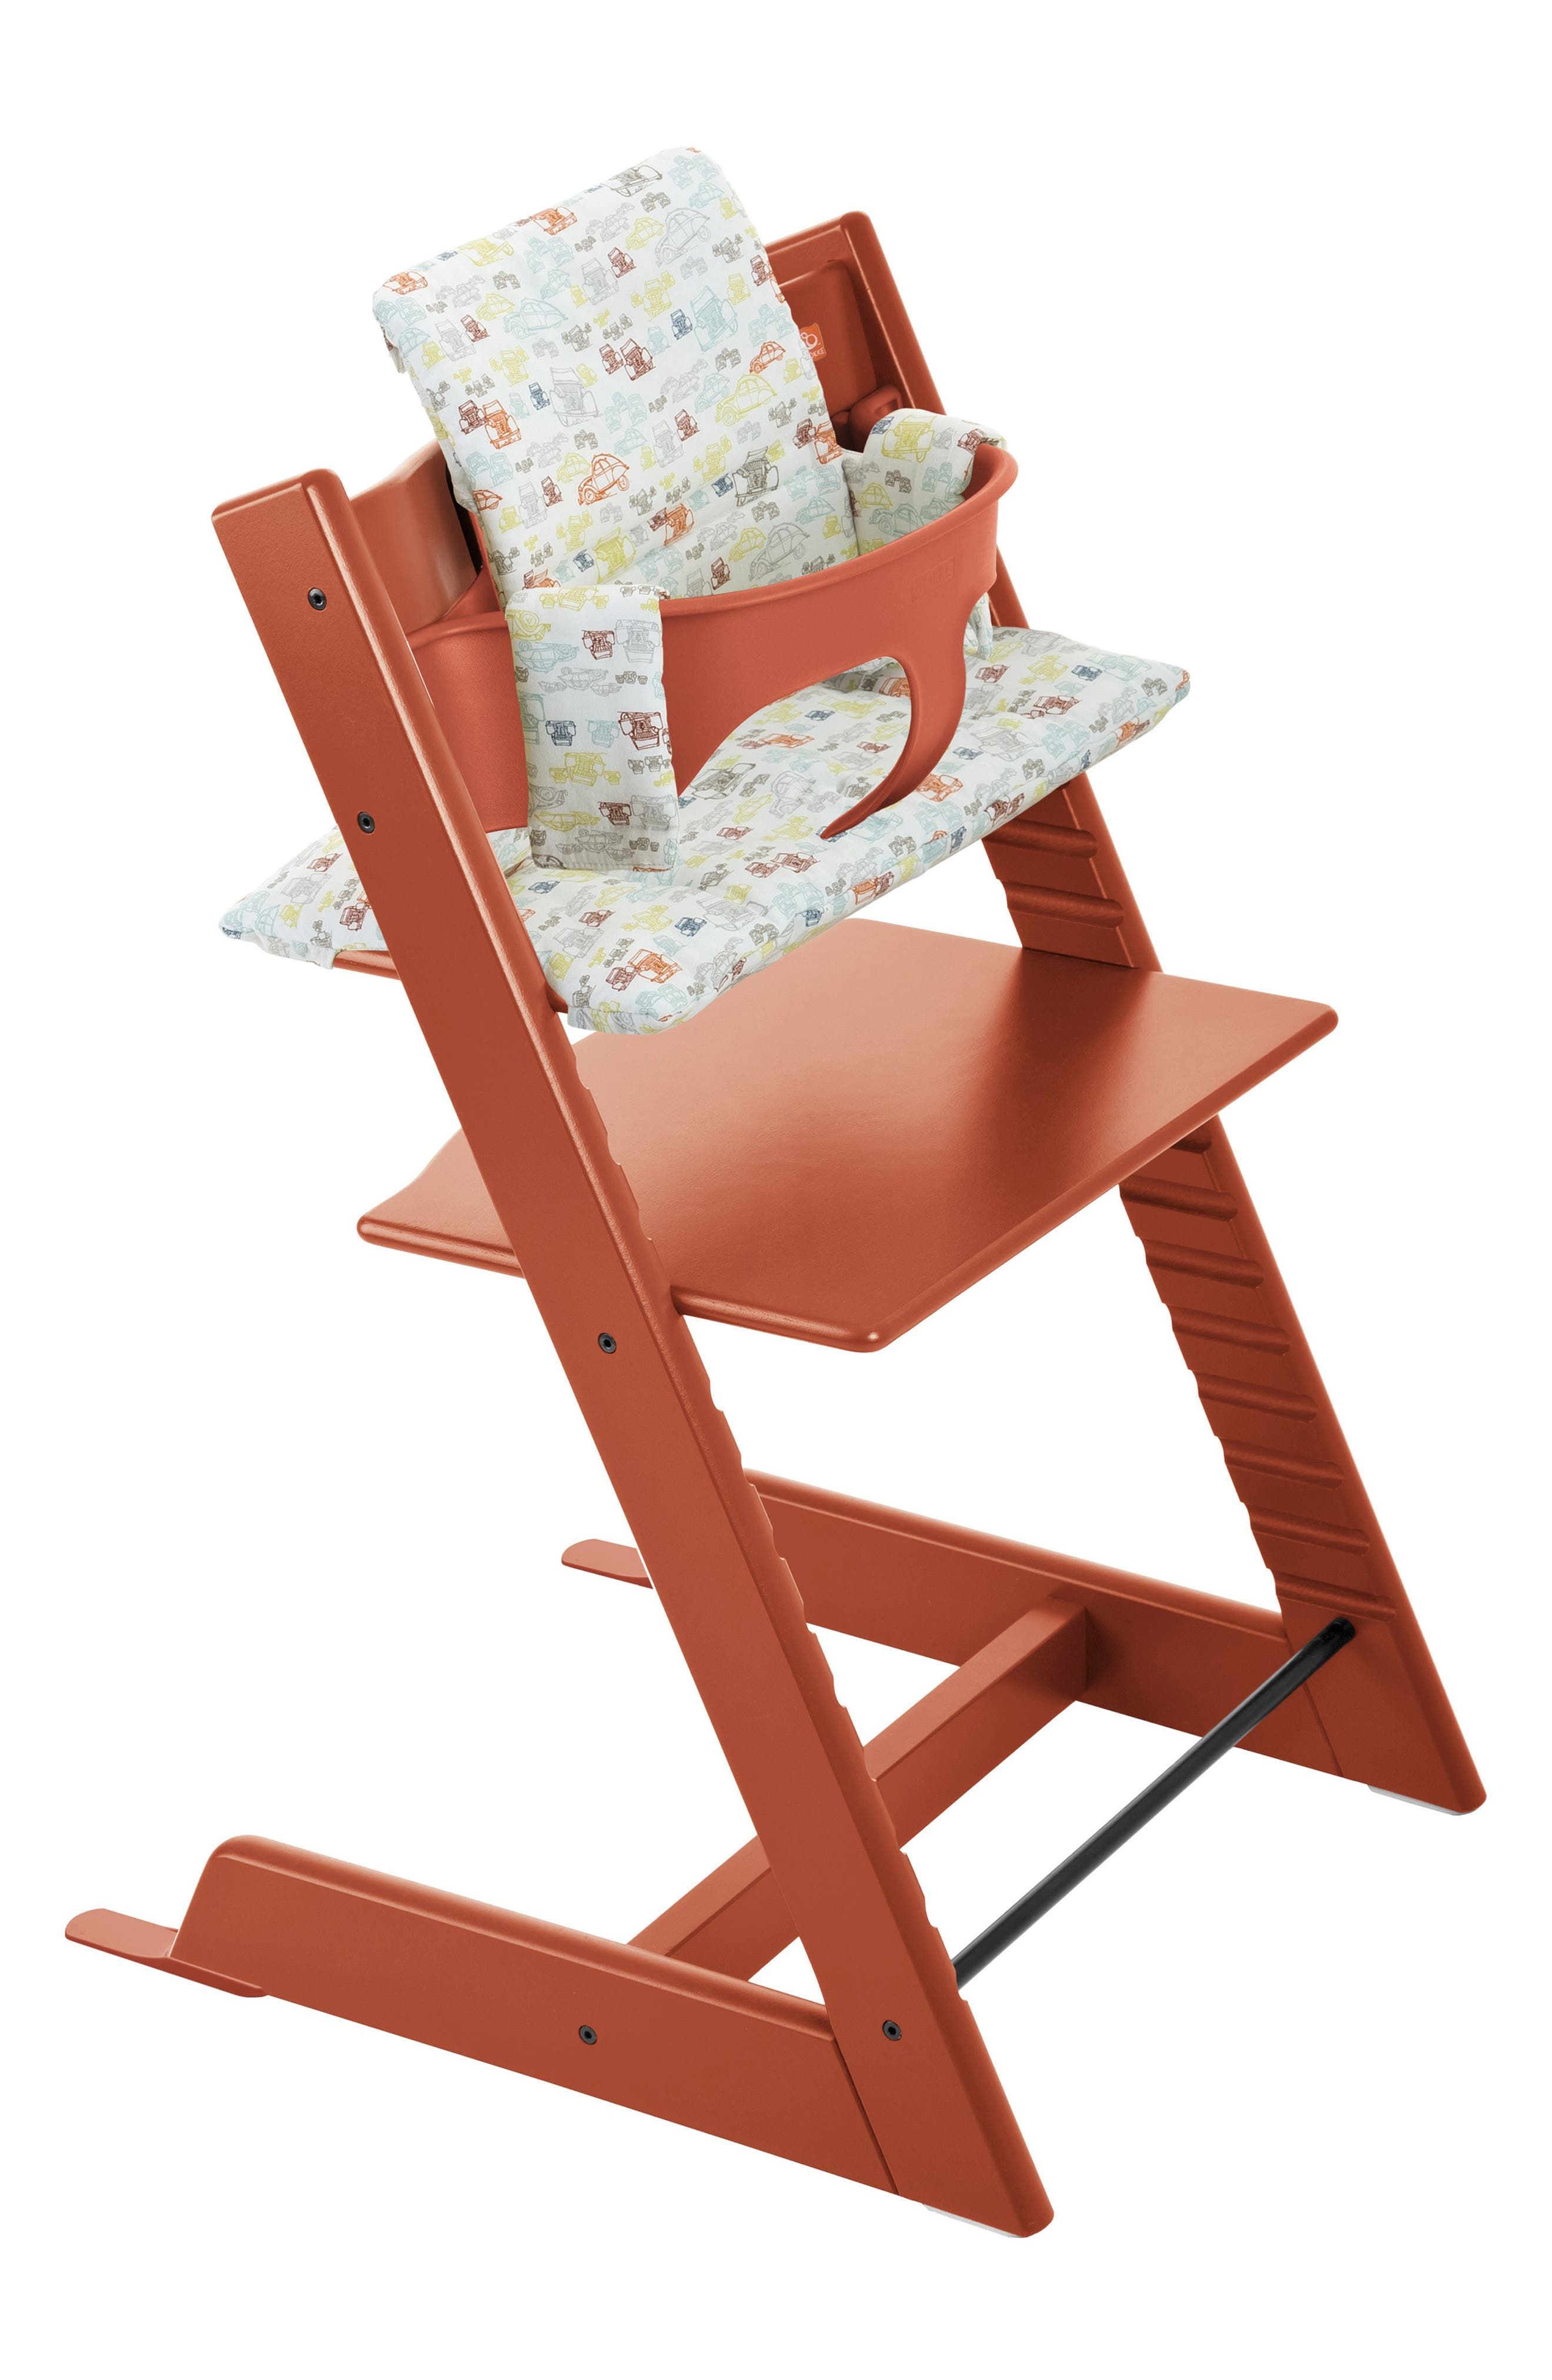 Stokke Tripp Trapp® High Chair, Baby Set, Cushion & Tray Set (Nordstrom Exclusive)